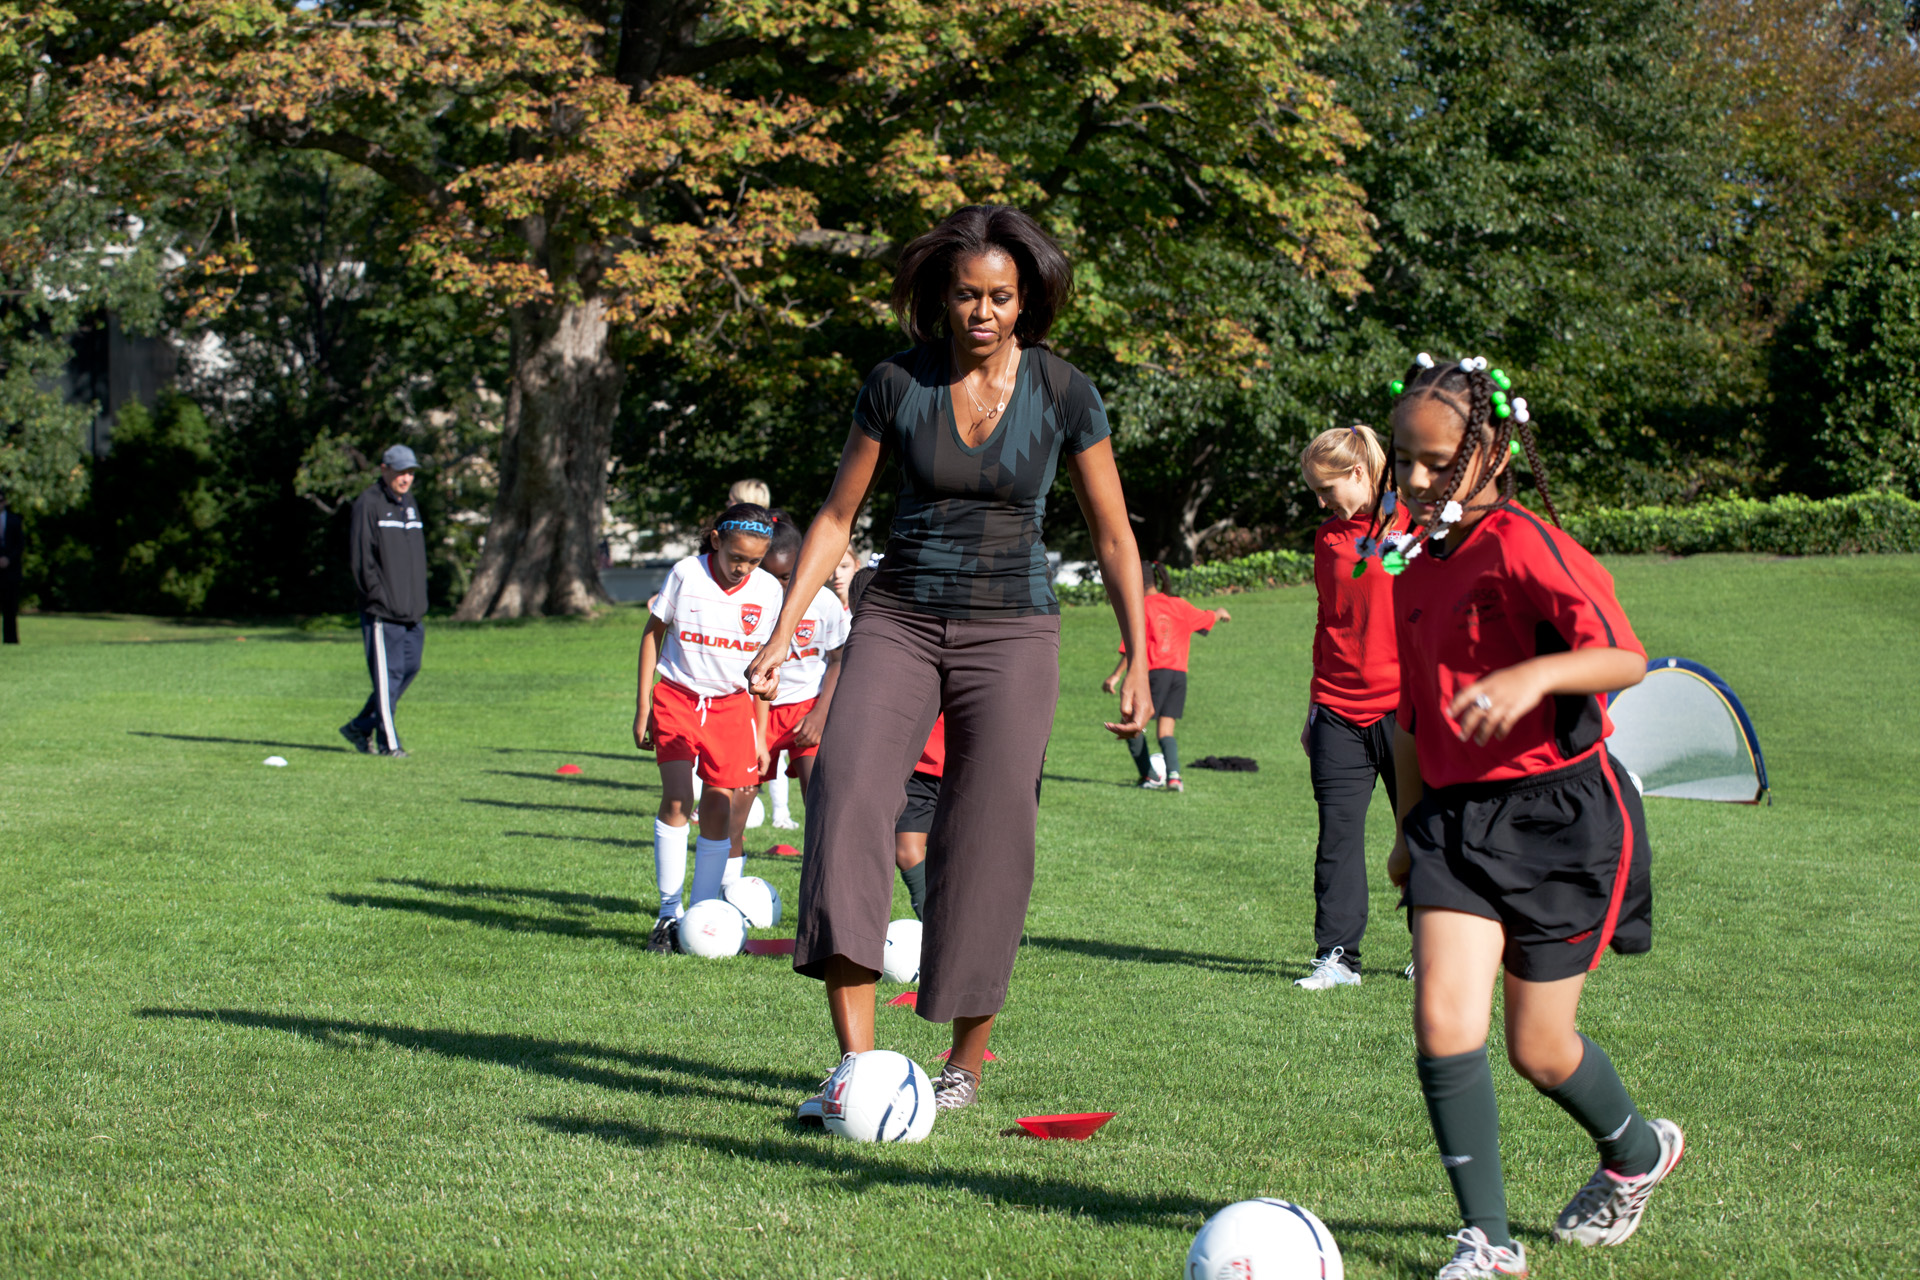 The First Lady and U.S. Women's National Soccer Team host a Soccer Clinic